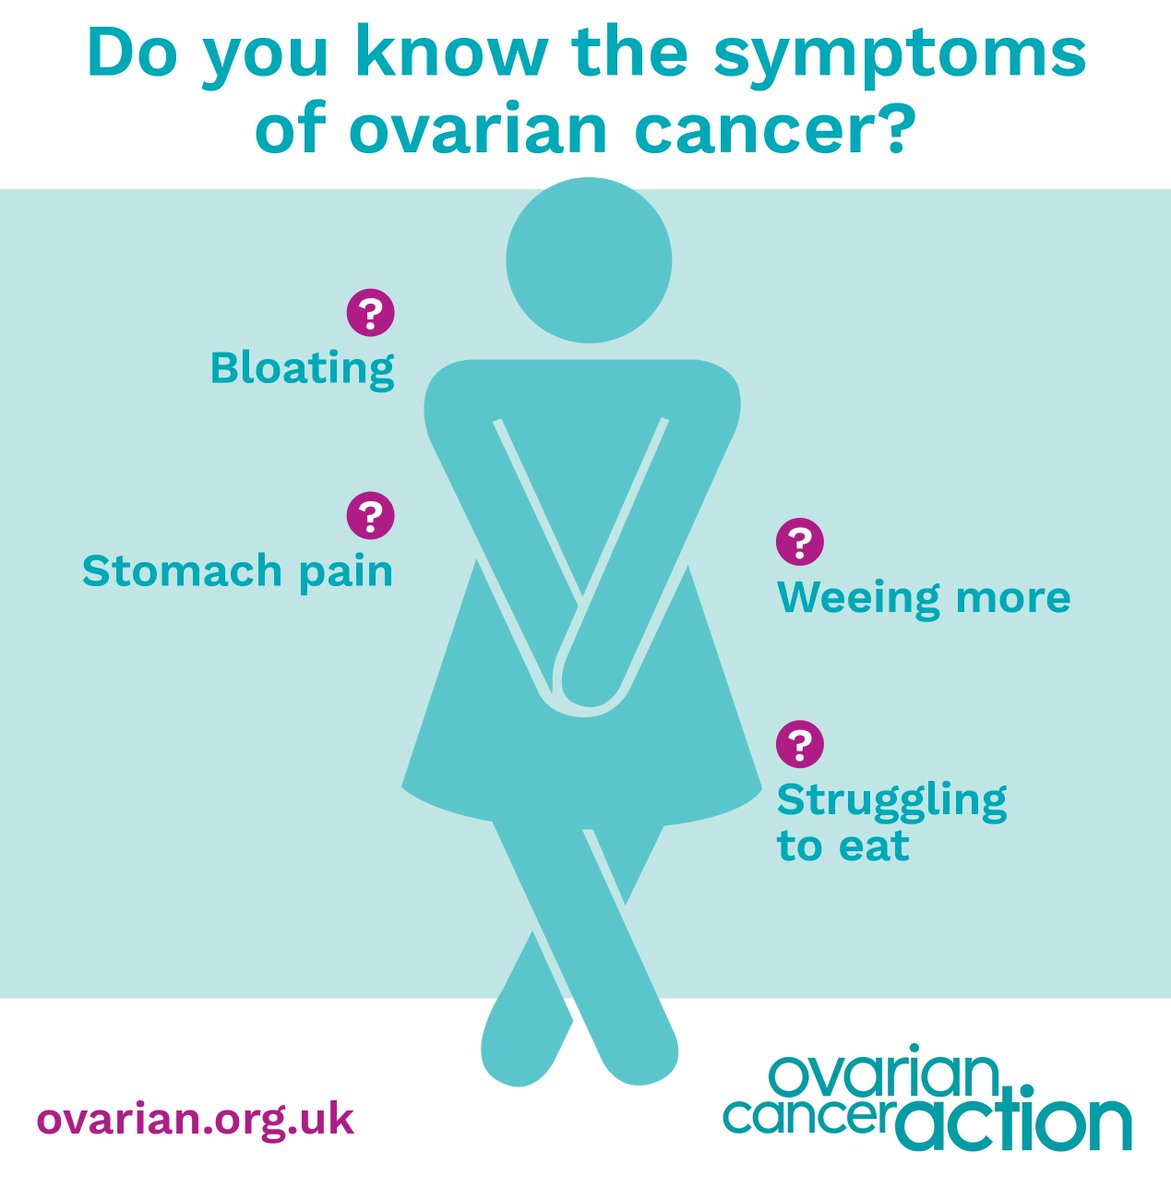 Ovarian Cancer Action On Twitter Ovarian Cancer Kills More Women In The Uk Than The Other Four Gynae Cancers Combined With No Reliable Screening Method Smear Tests Do Not Detect Ovarian Cancer